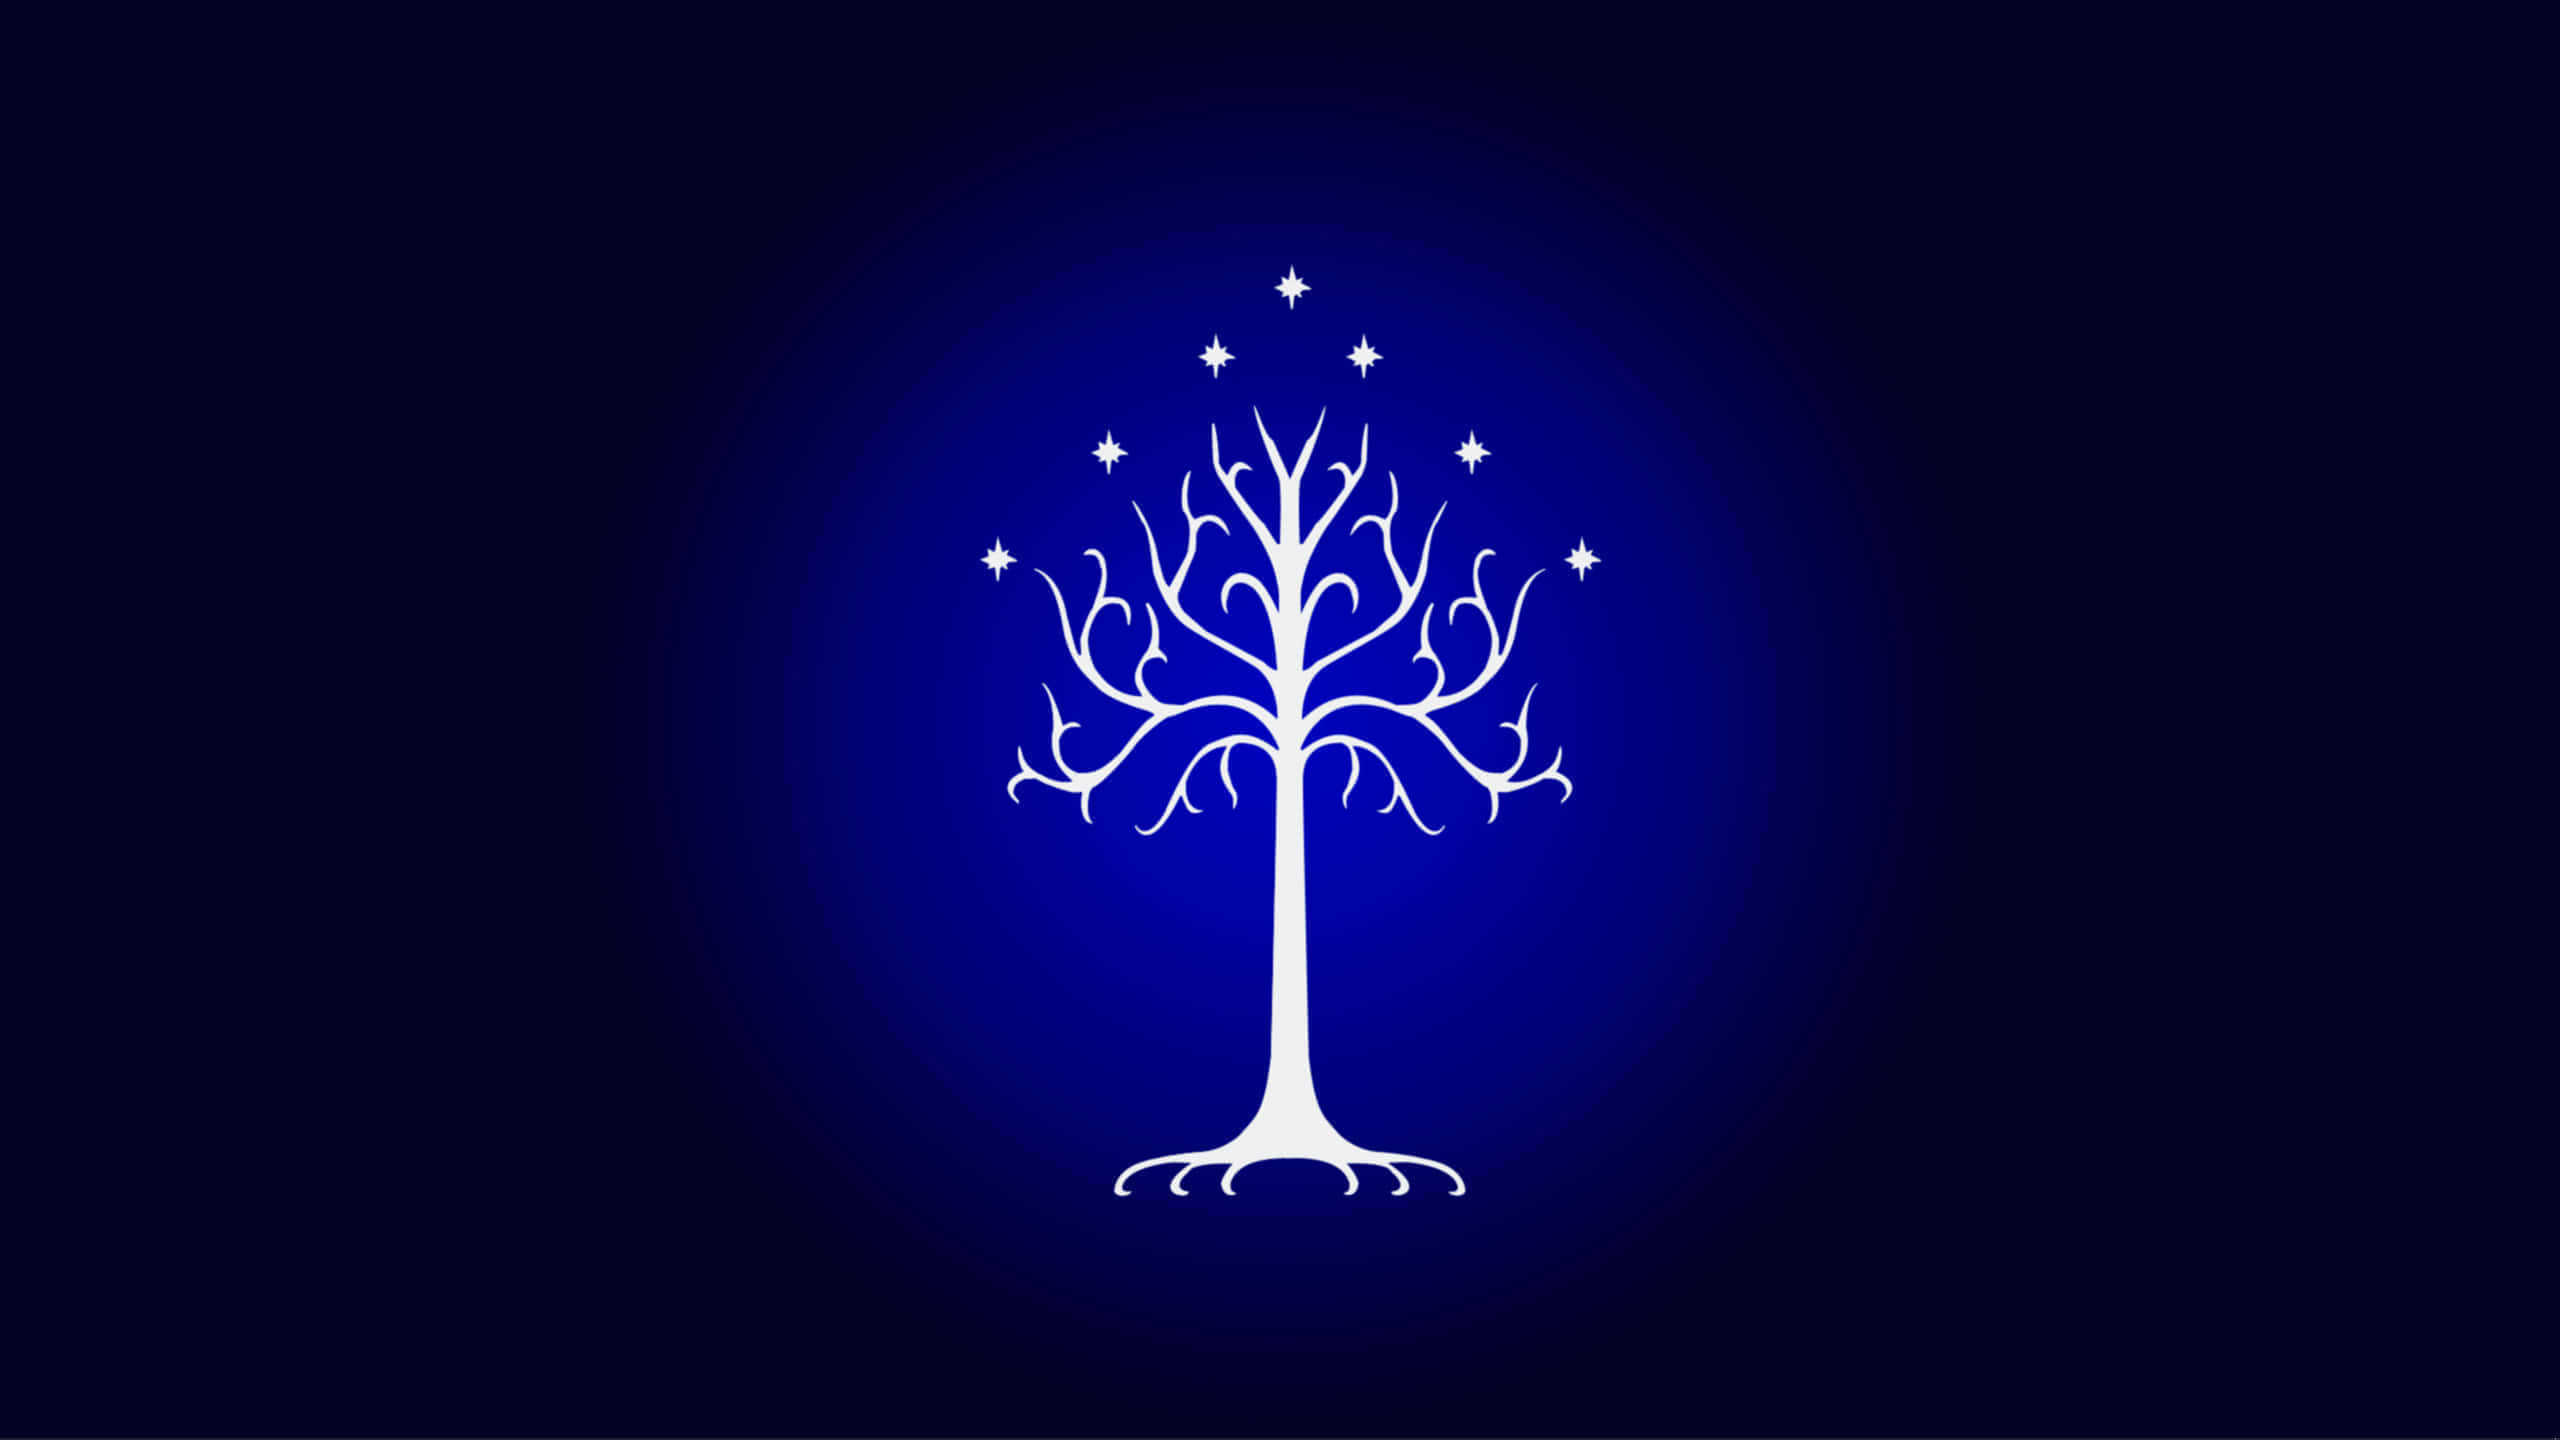 Lord Of The Rings White Tree Of Gondor WQHD 1440p Wallpaper